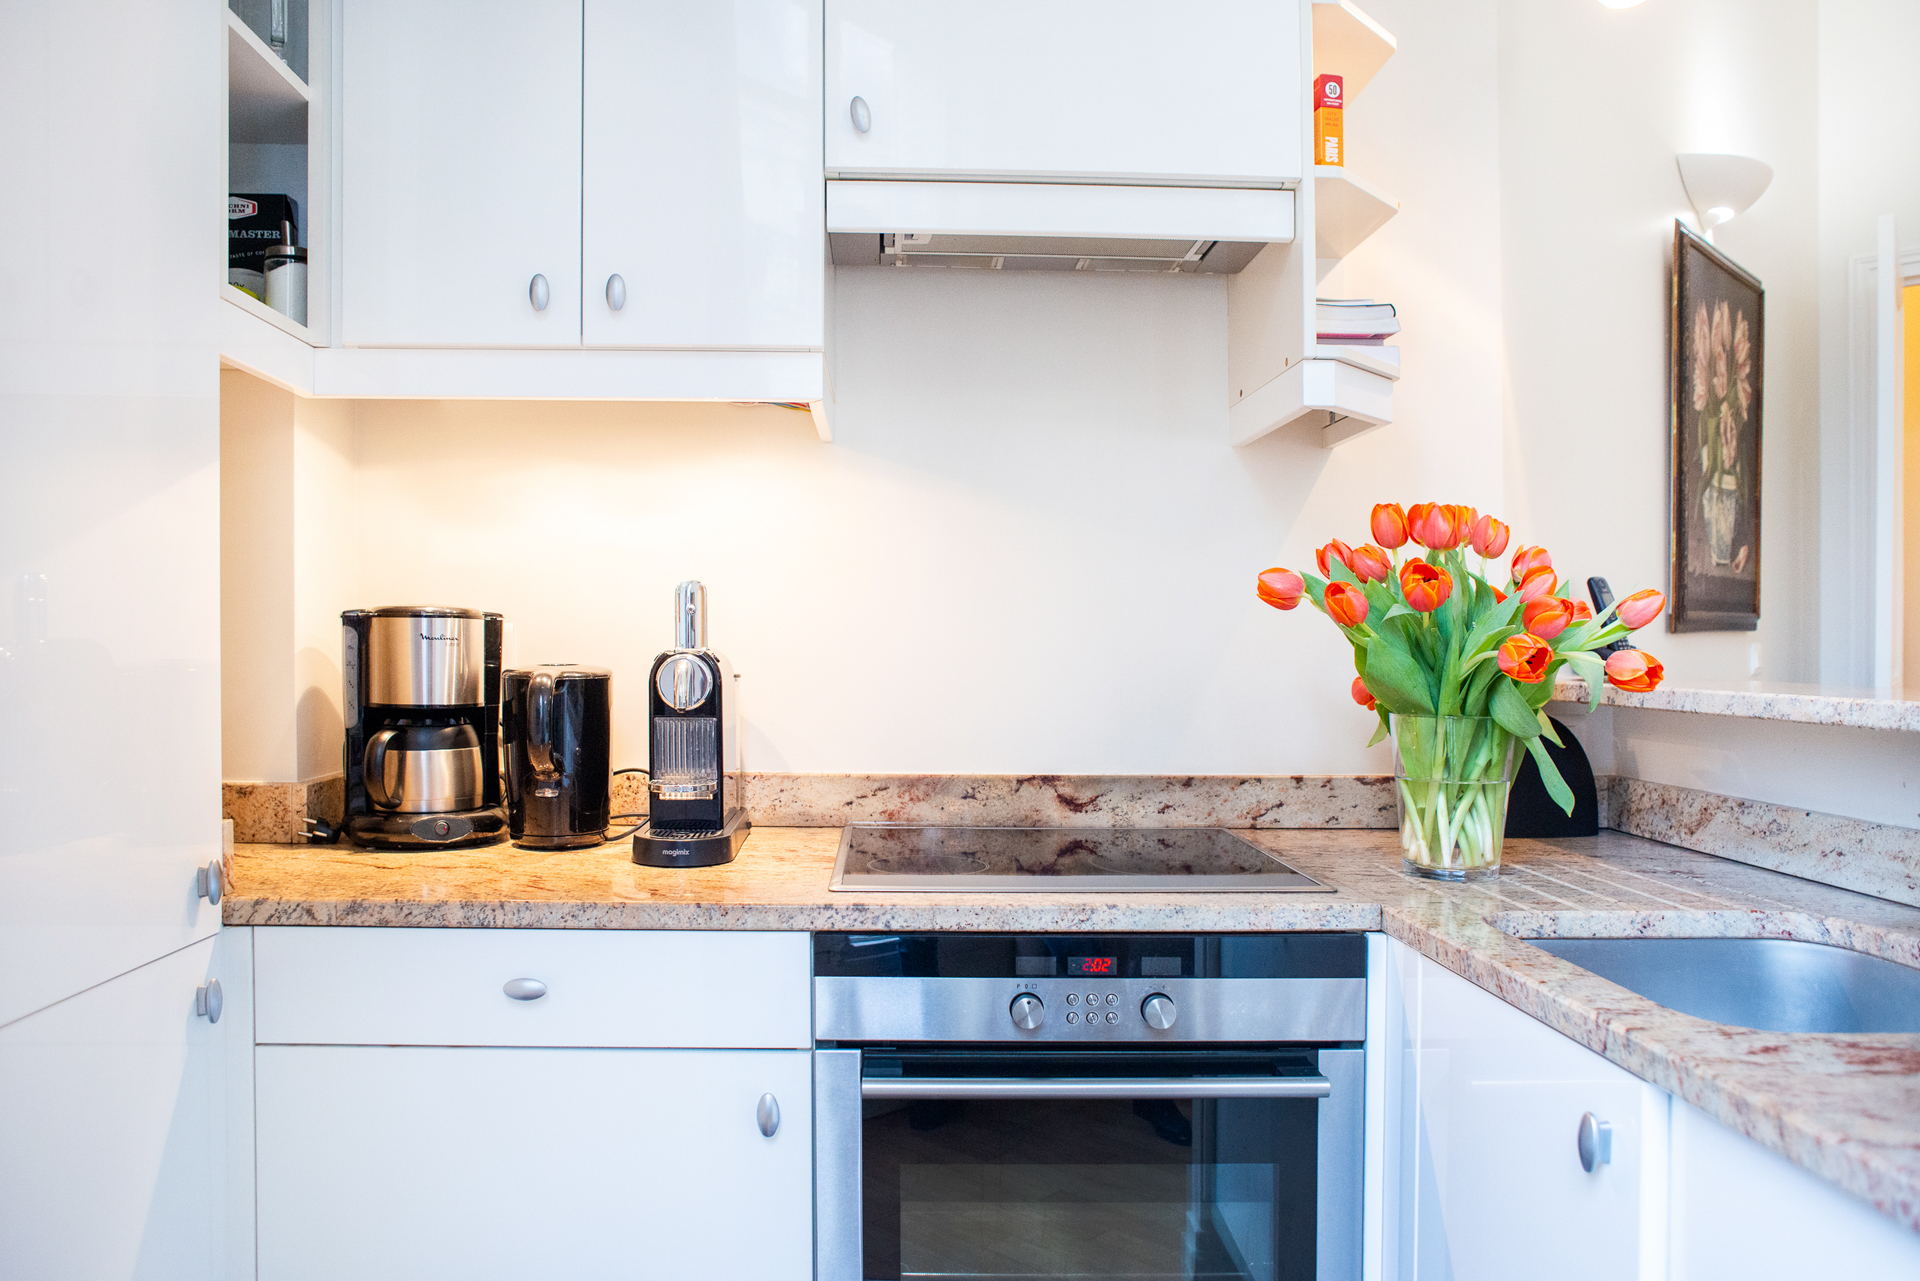 Remodeled kitchen in the Corent apartment by Paris Perfect